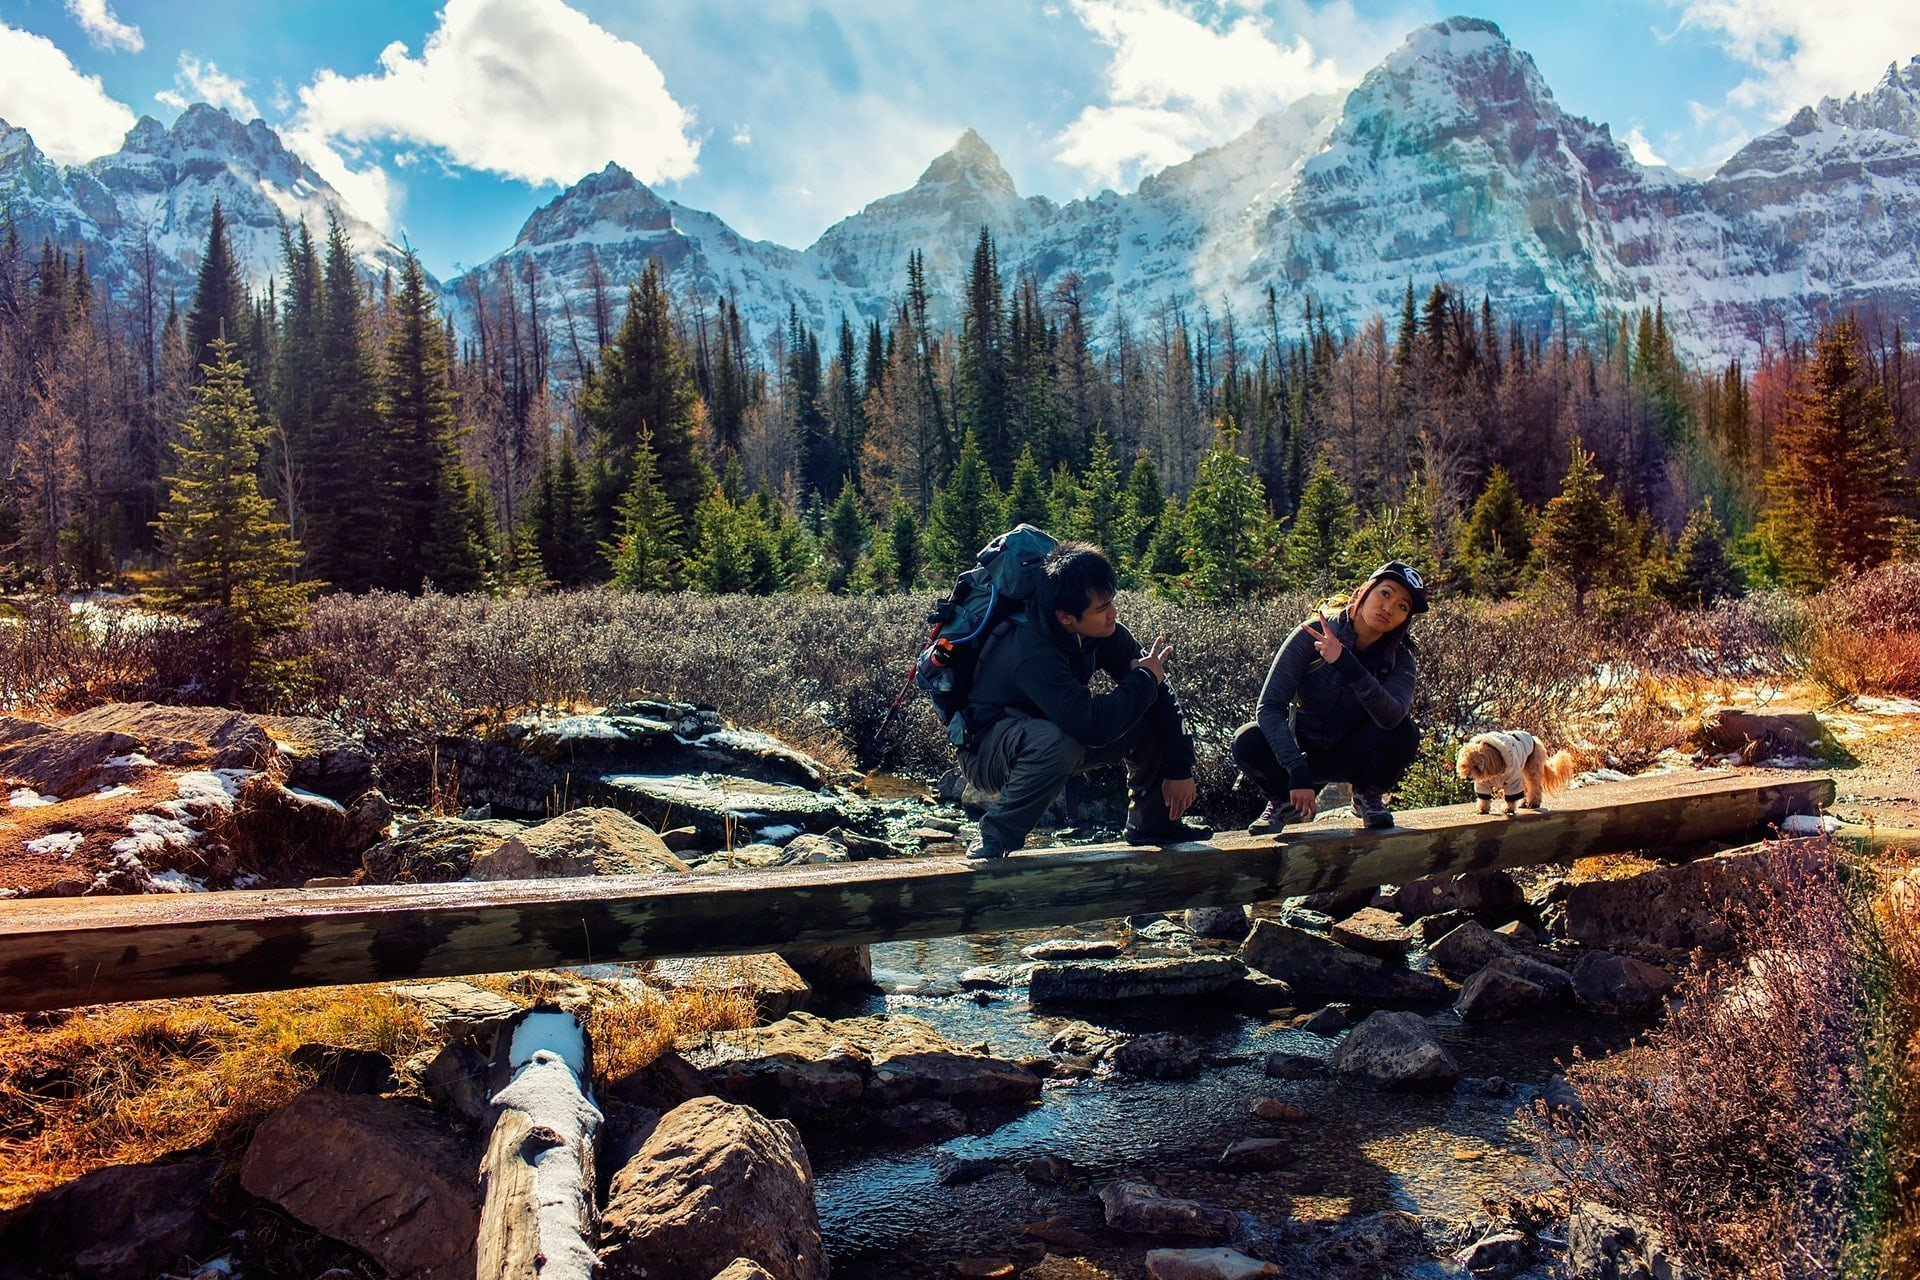 Sitting on a long log that crosses a river at valley of the ten peaks alberta canada